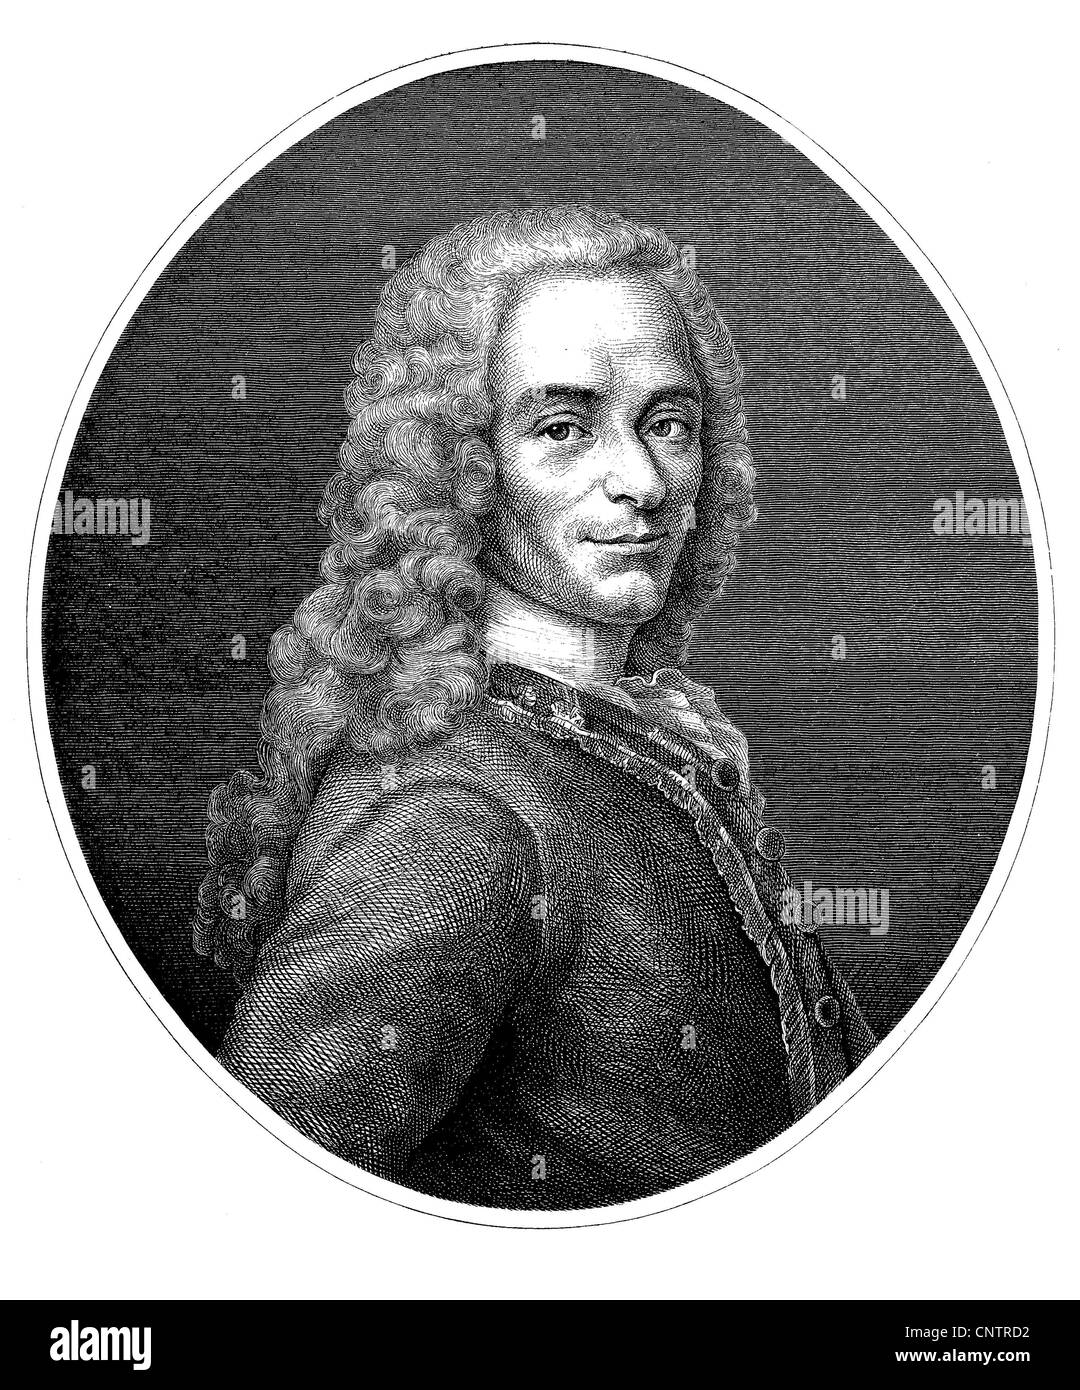 Voltaire, actually Francois Marie Arouet, 1694-1778, author of French and  European Enlightenment, historical engraving, circa 18